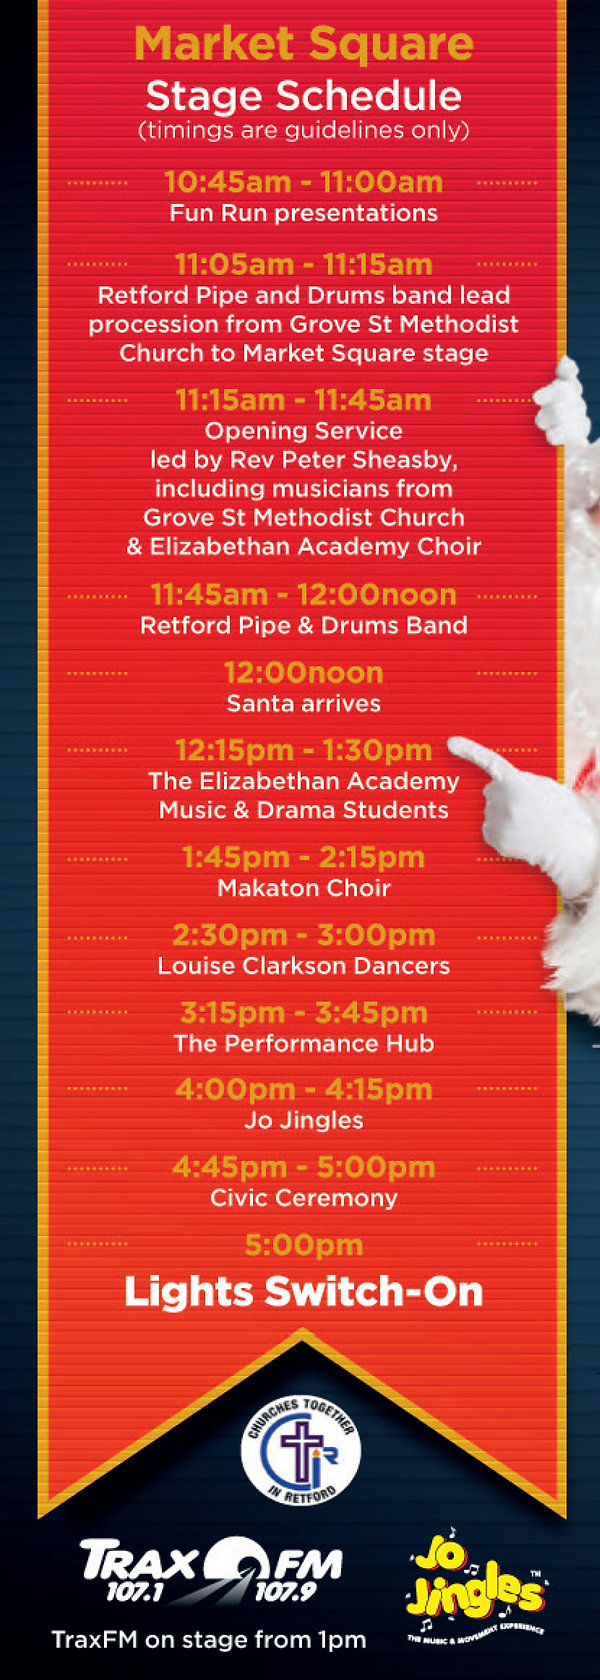 RCM Web Pic 04 Stage Sched.jpg